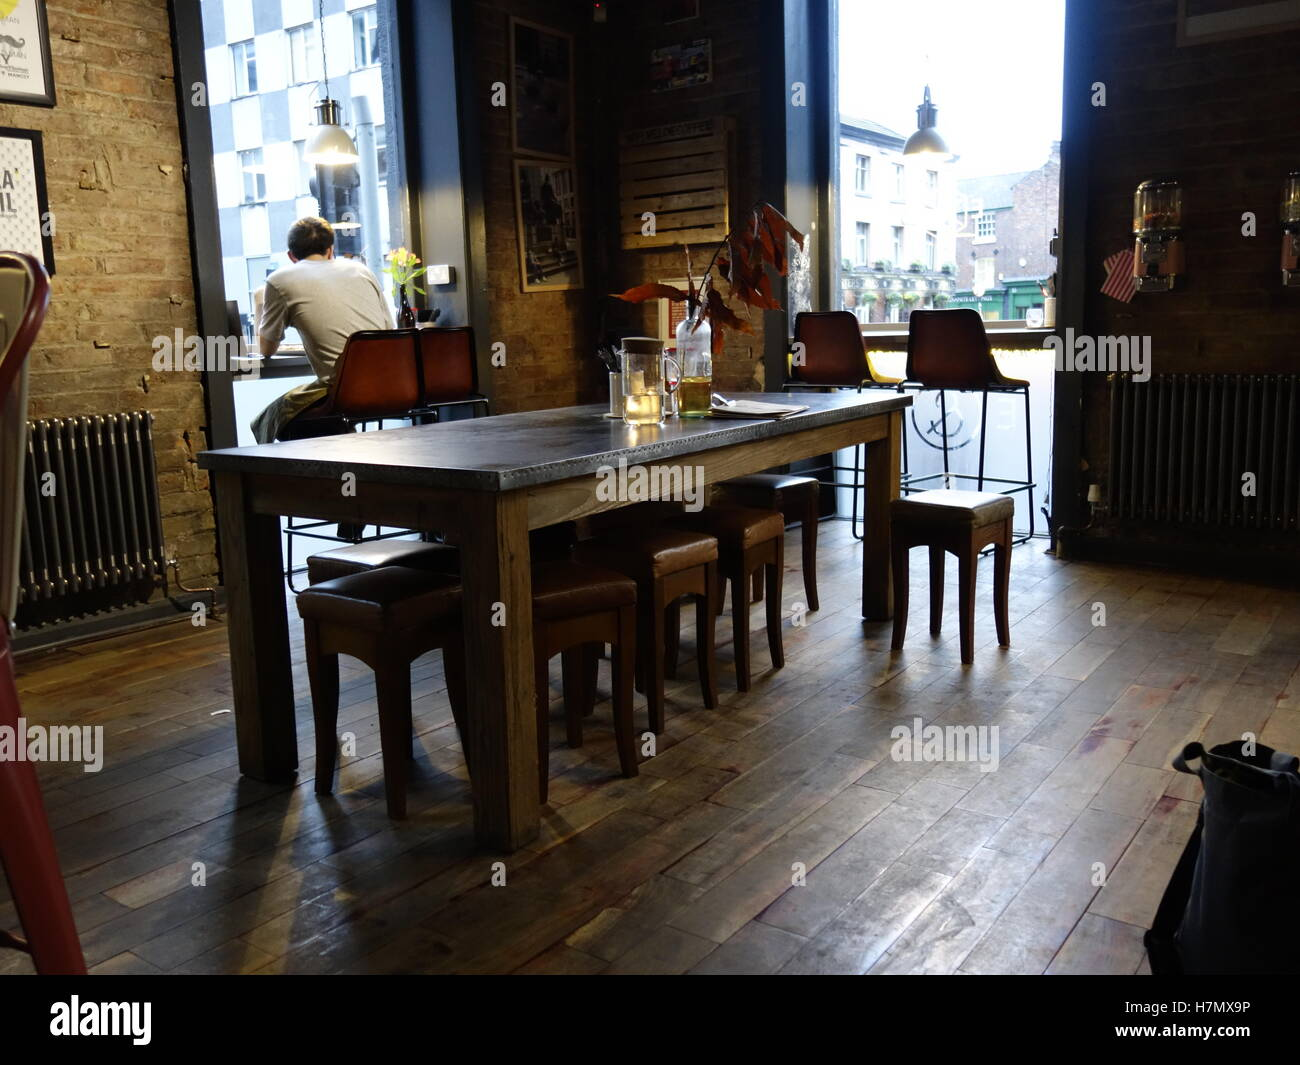 A table in an old atmospheric coffee shop - Stock Image